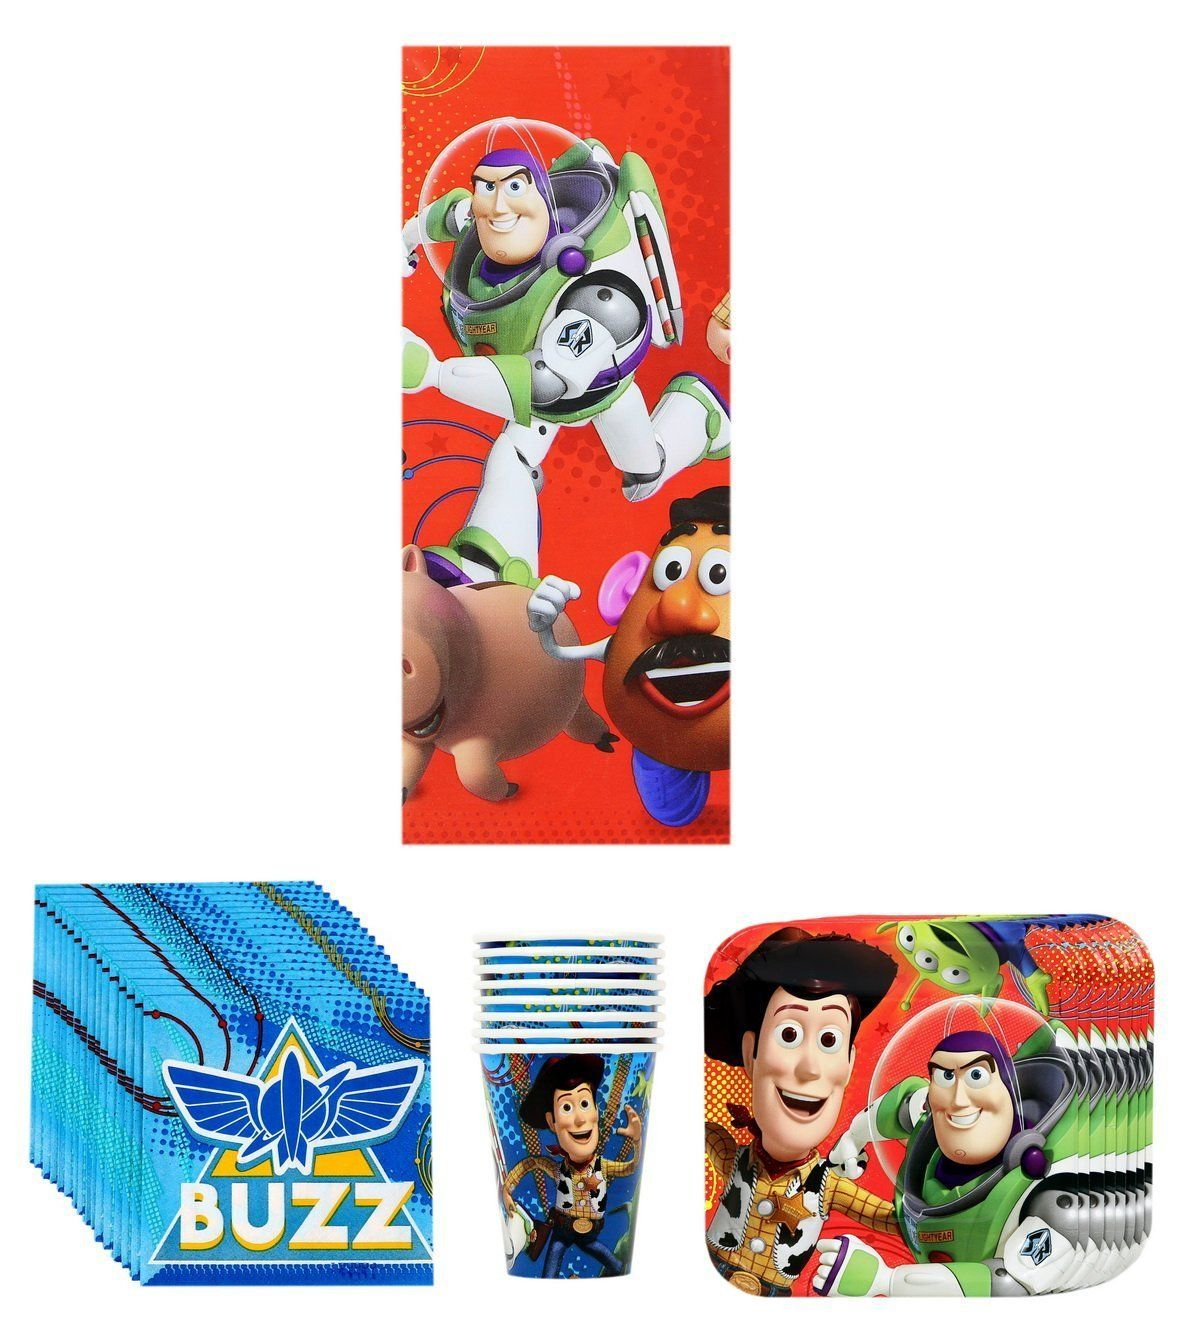 Disney Pixar Toy Story Birthday Party Supplies Bundle Plates Cups Napkins and Table  sc 1 st  Pinterest & Toy Story Birthday Party Supplies Bundle for 8: Plates Cups ...